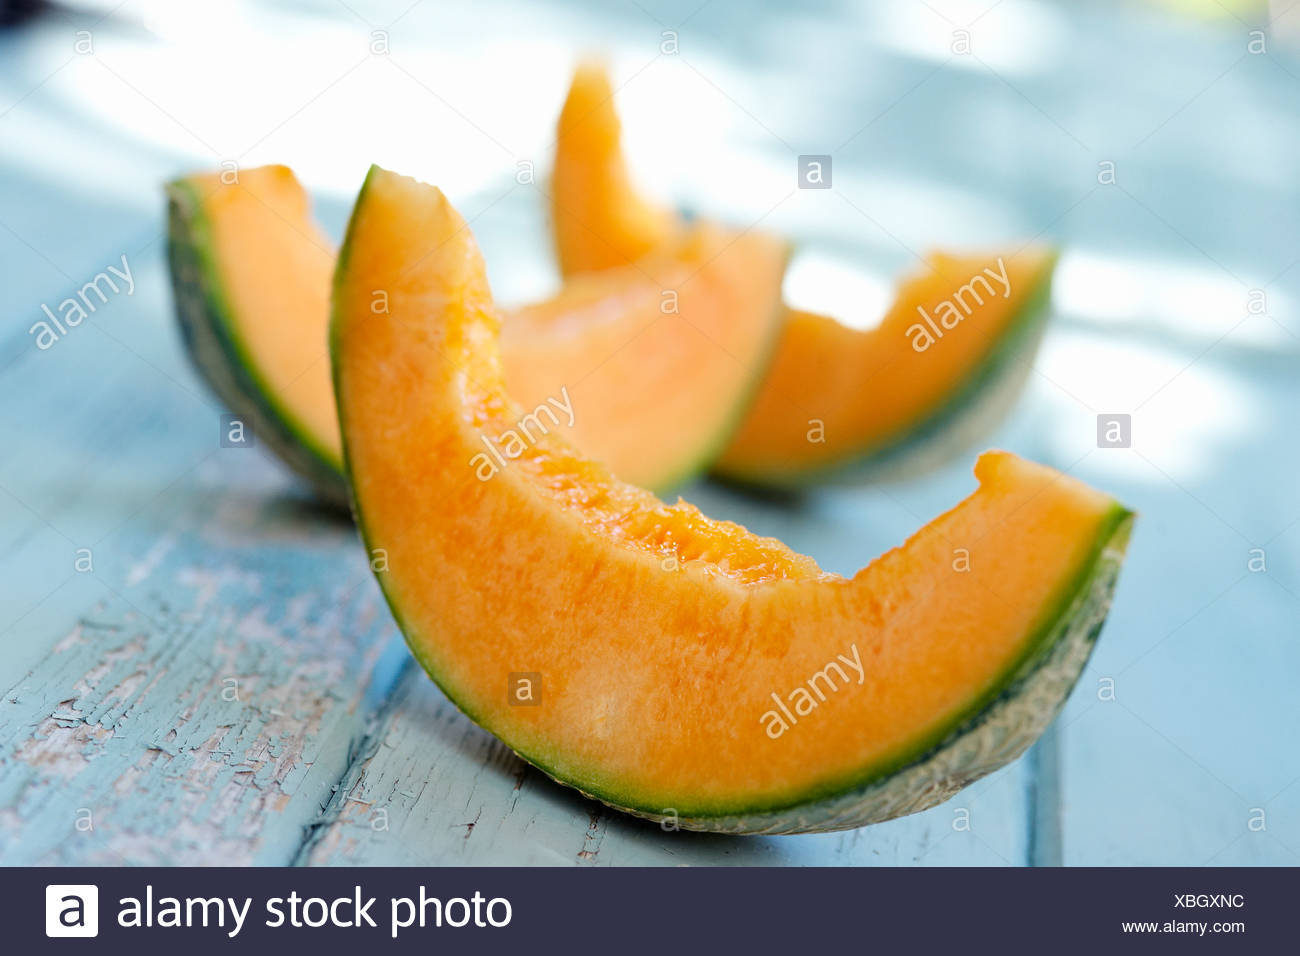 Slices of melon - Stock Image